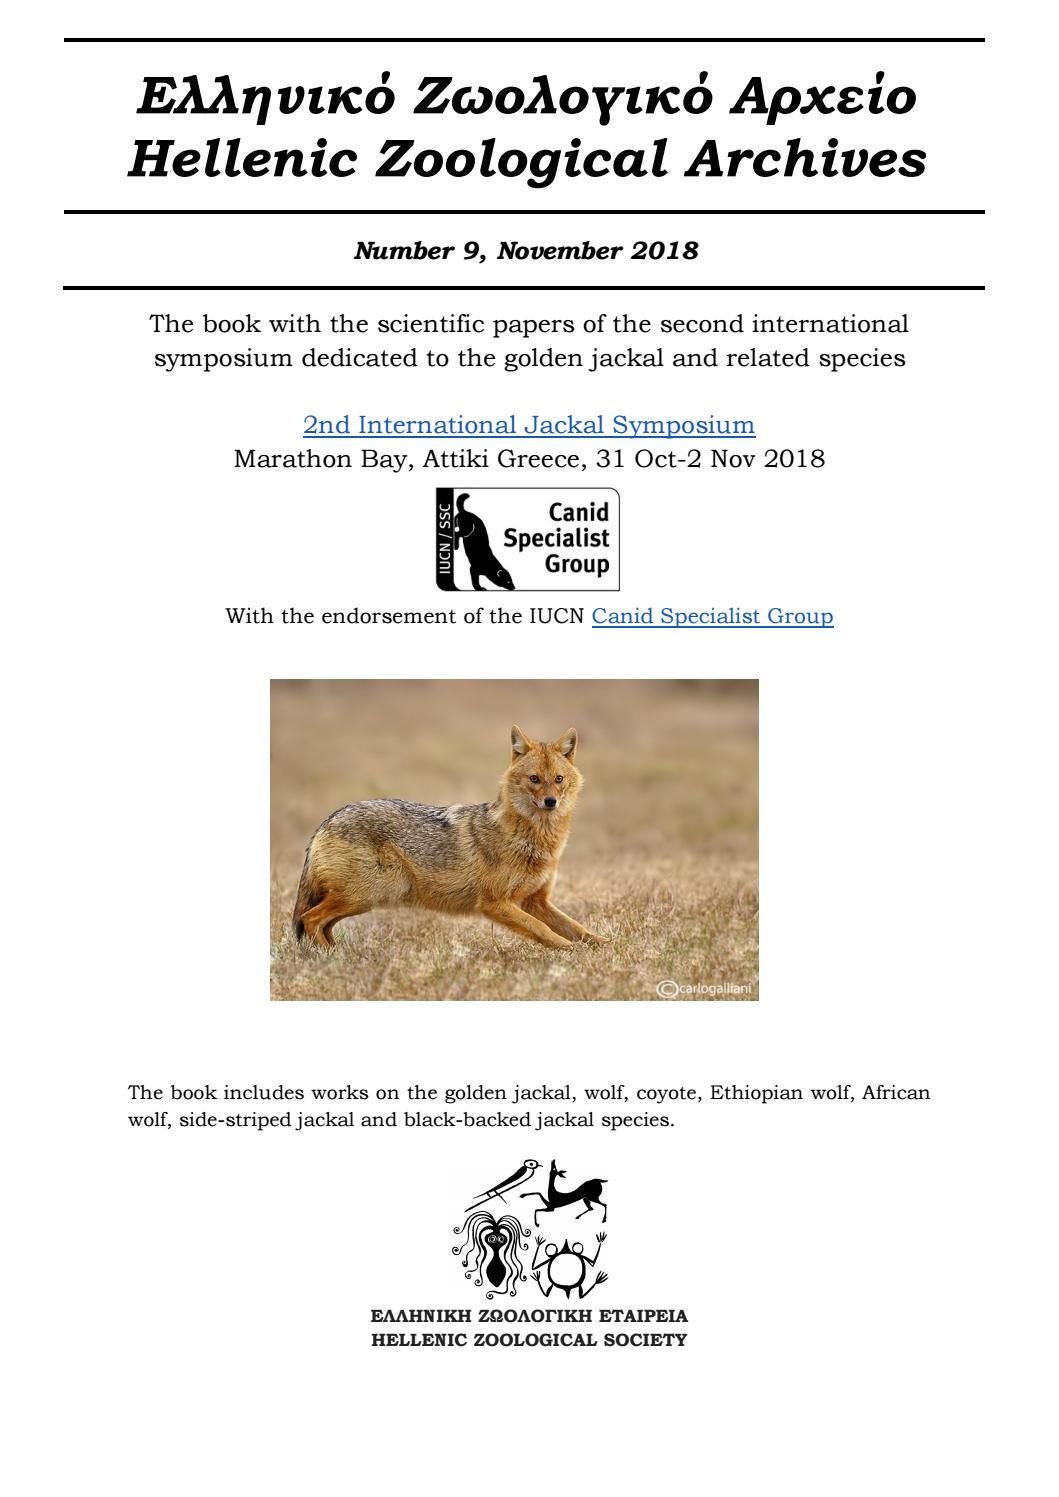 Proceedings of the 2nd International Jackal Symposium by